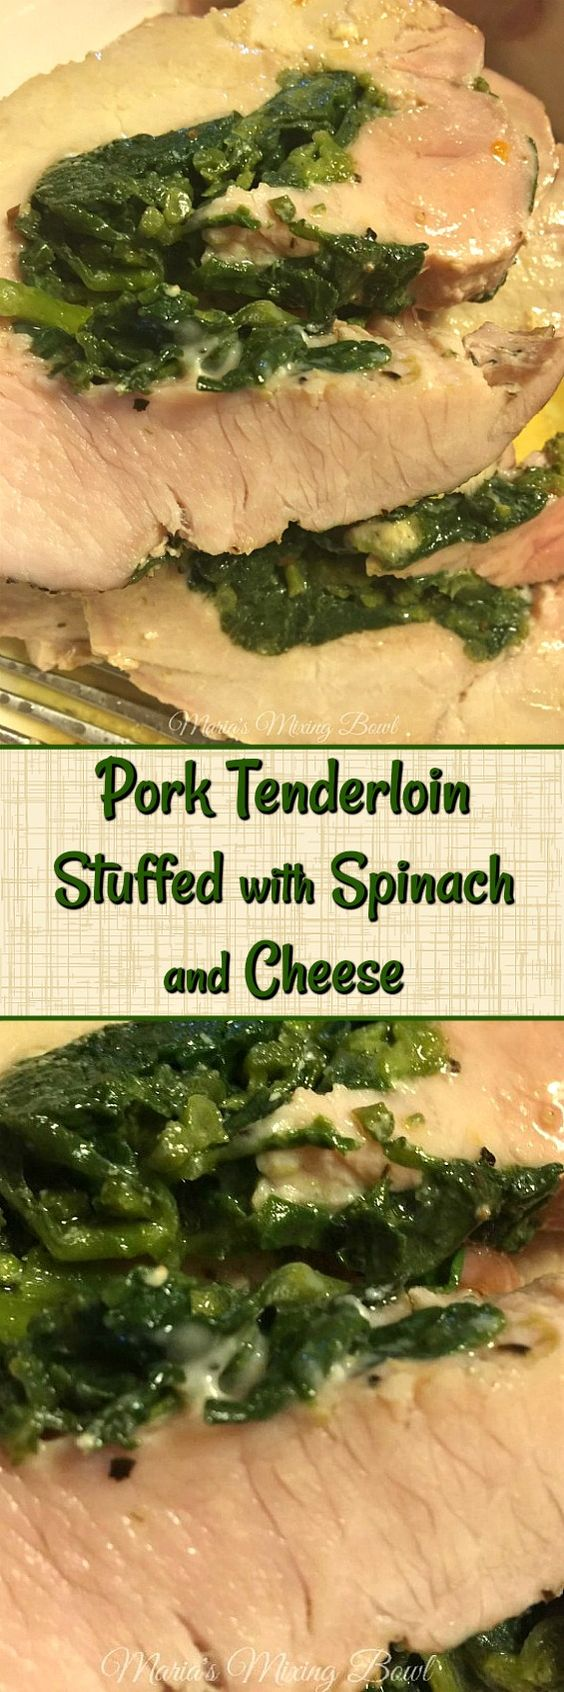 Pork Tenderloin Stuffed with Spinach and Cheese -  Pork tenderloin is a delicious, tender roast that is a staple in our house . This spinach stuffed pork tenderloin is one of my favorite dishes to make for guests.  It is always a big hit.